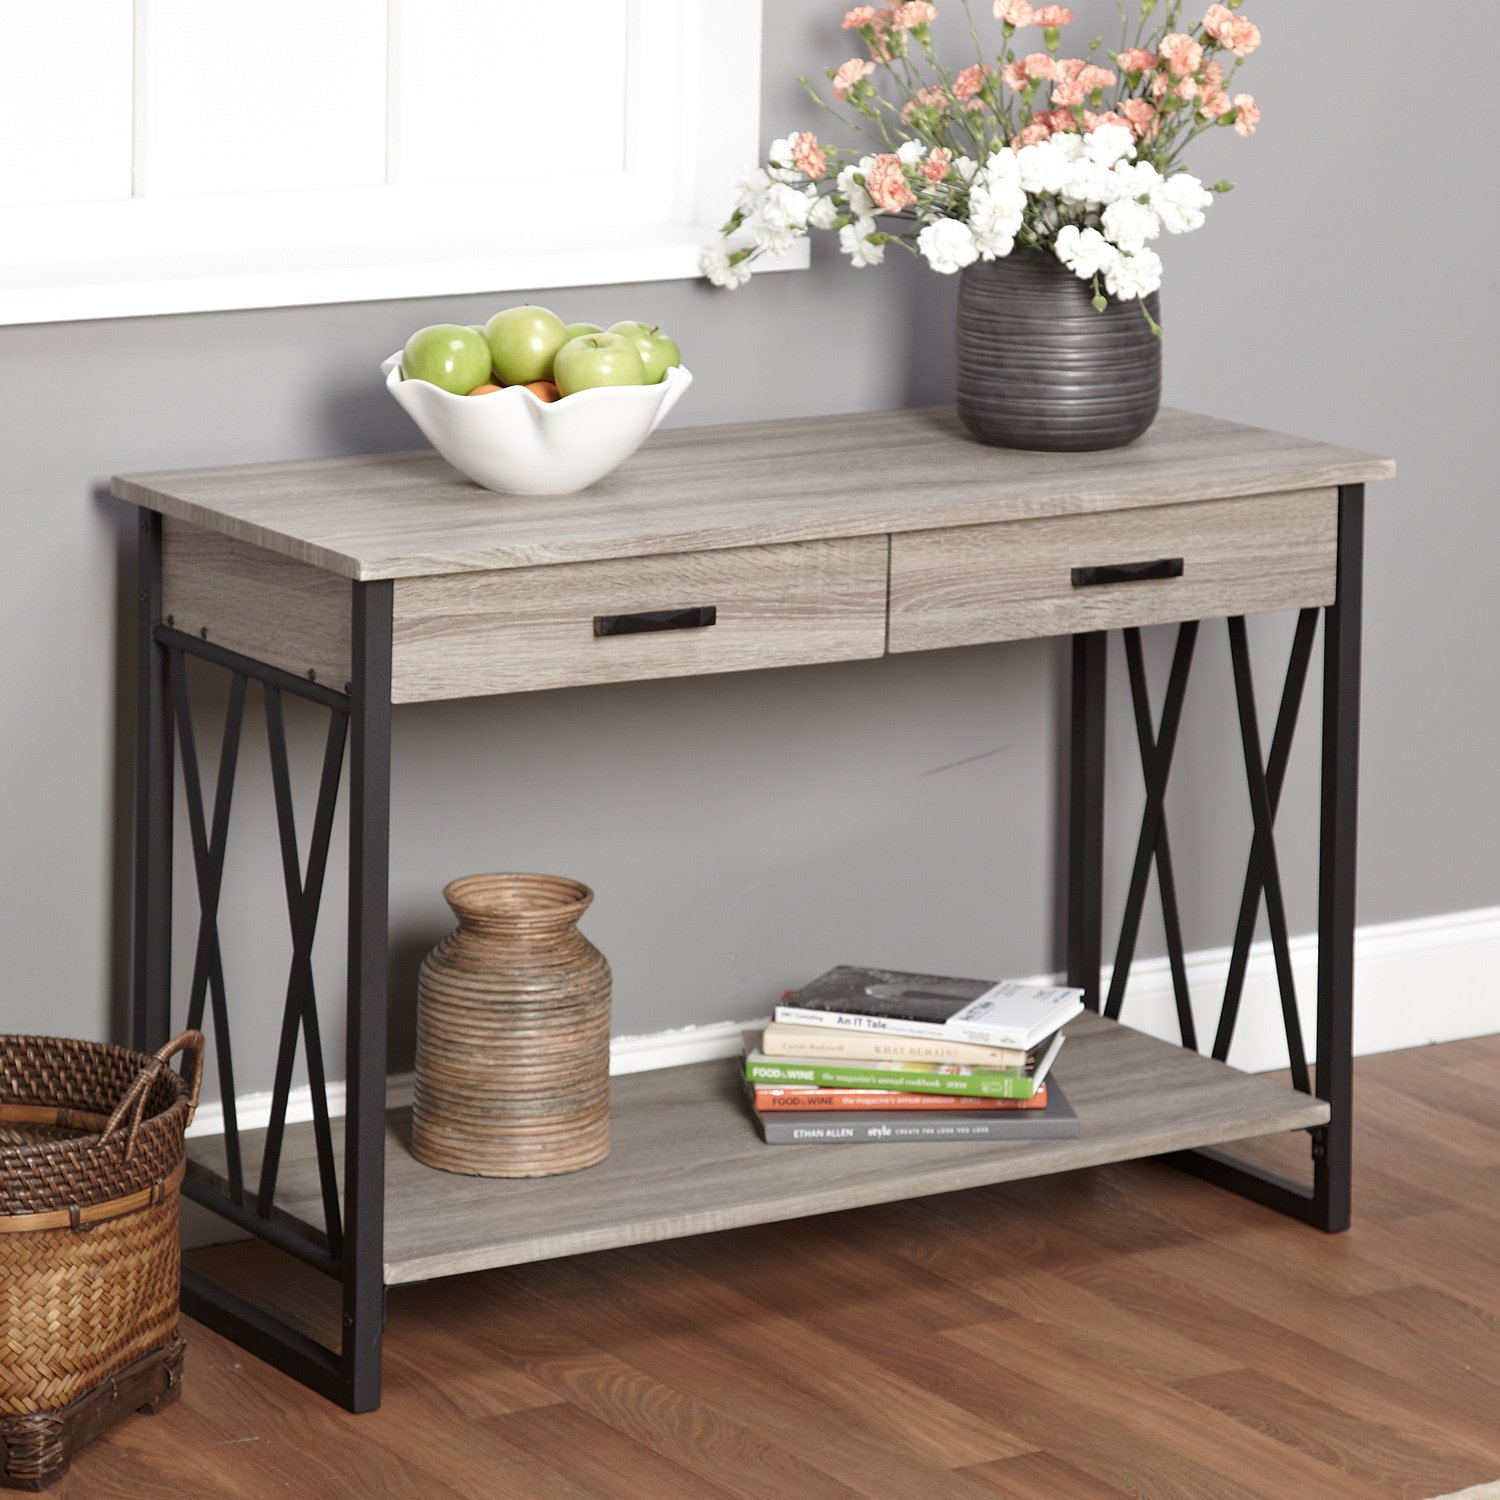 Side Table Decor : ... Table Living Home Furniture Decor Room Hallway Accent Entryway Wood